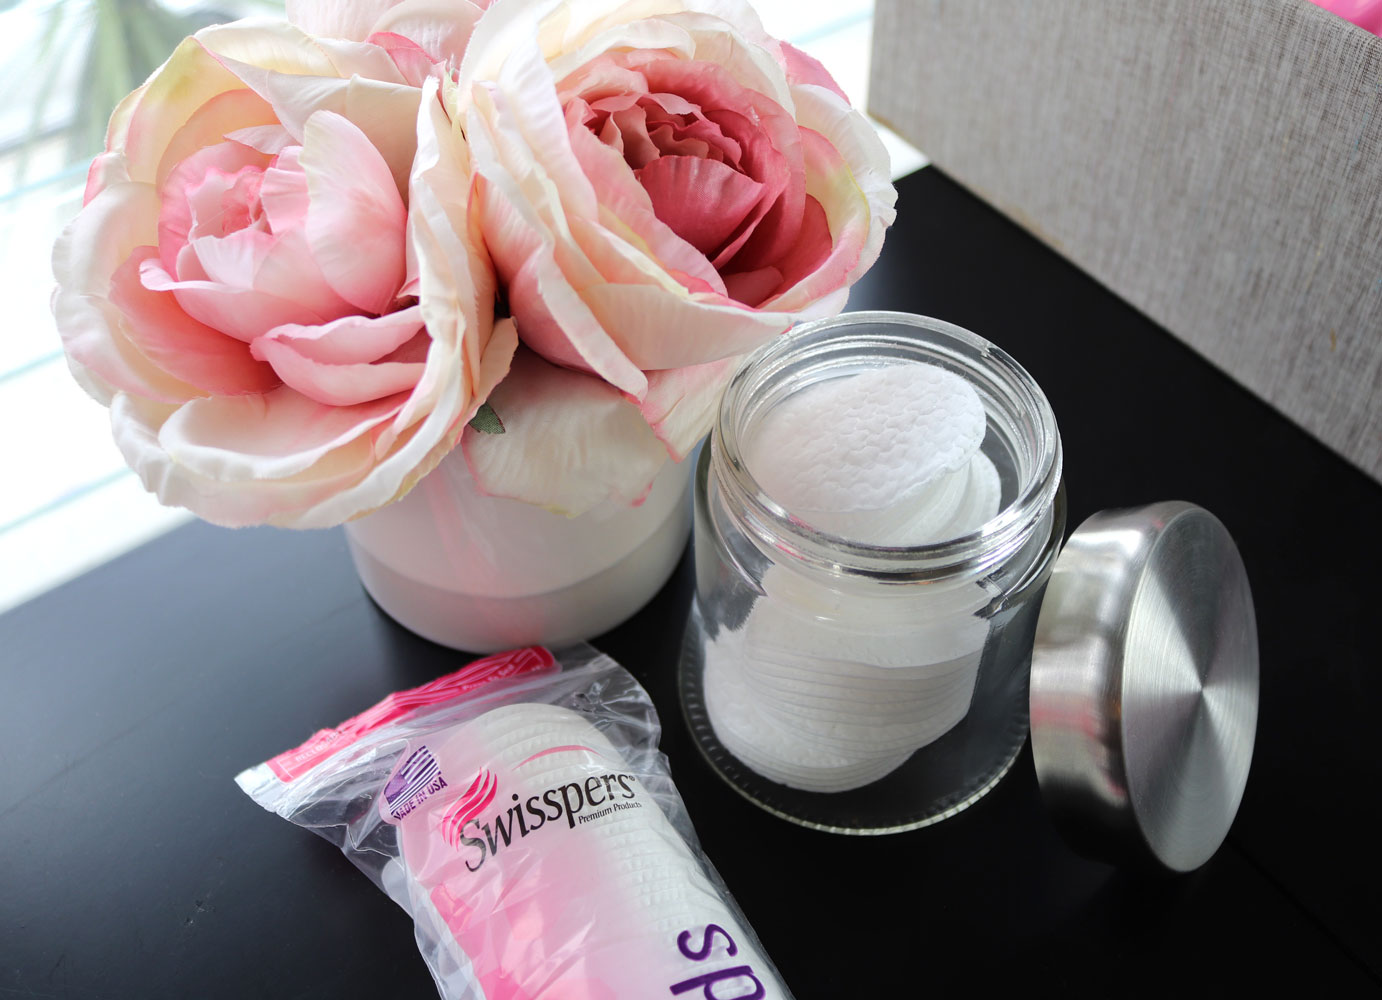 Swisspers cotton premium rounds for makeup removal and cleansing